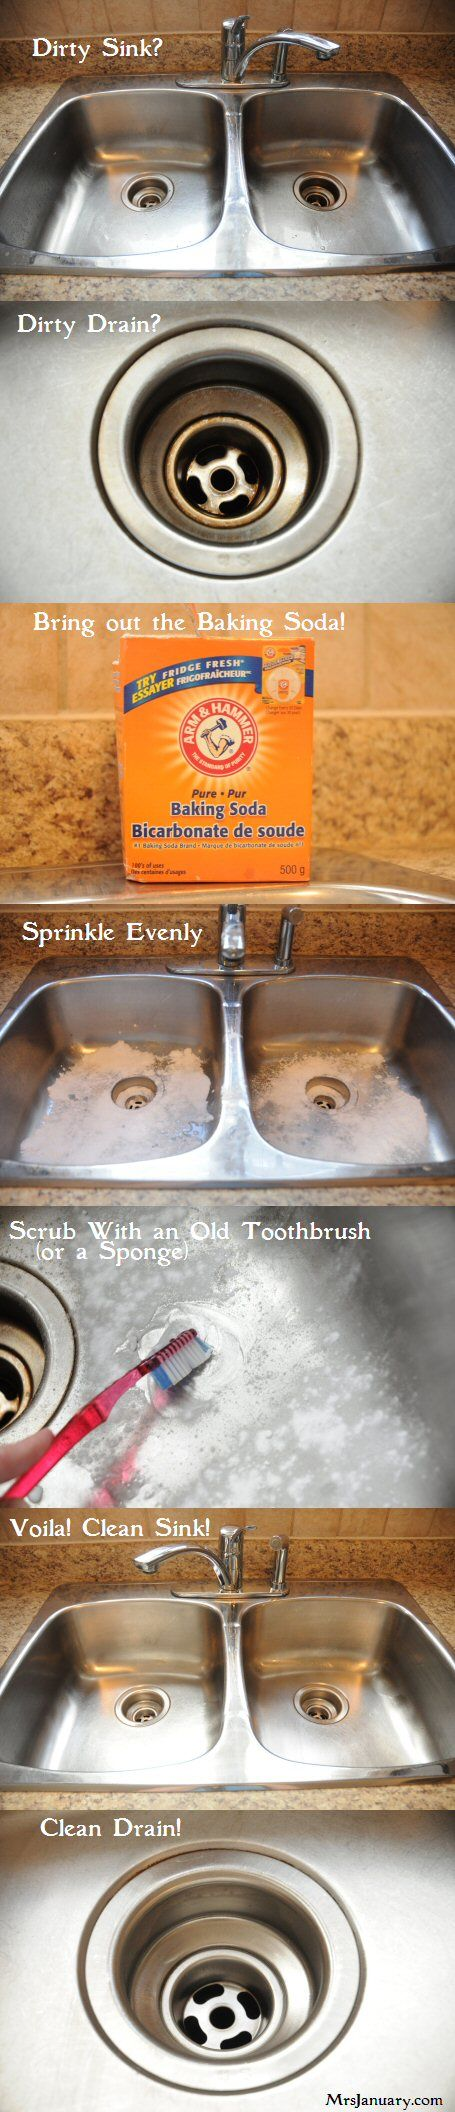 How to Clean {and Polish} a Stainless Steel Sink   Sinks, Stainless ...